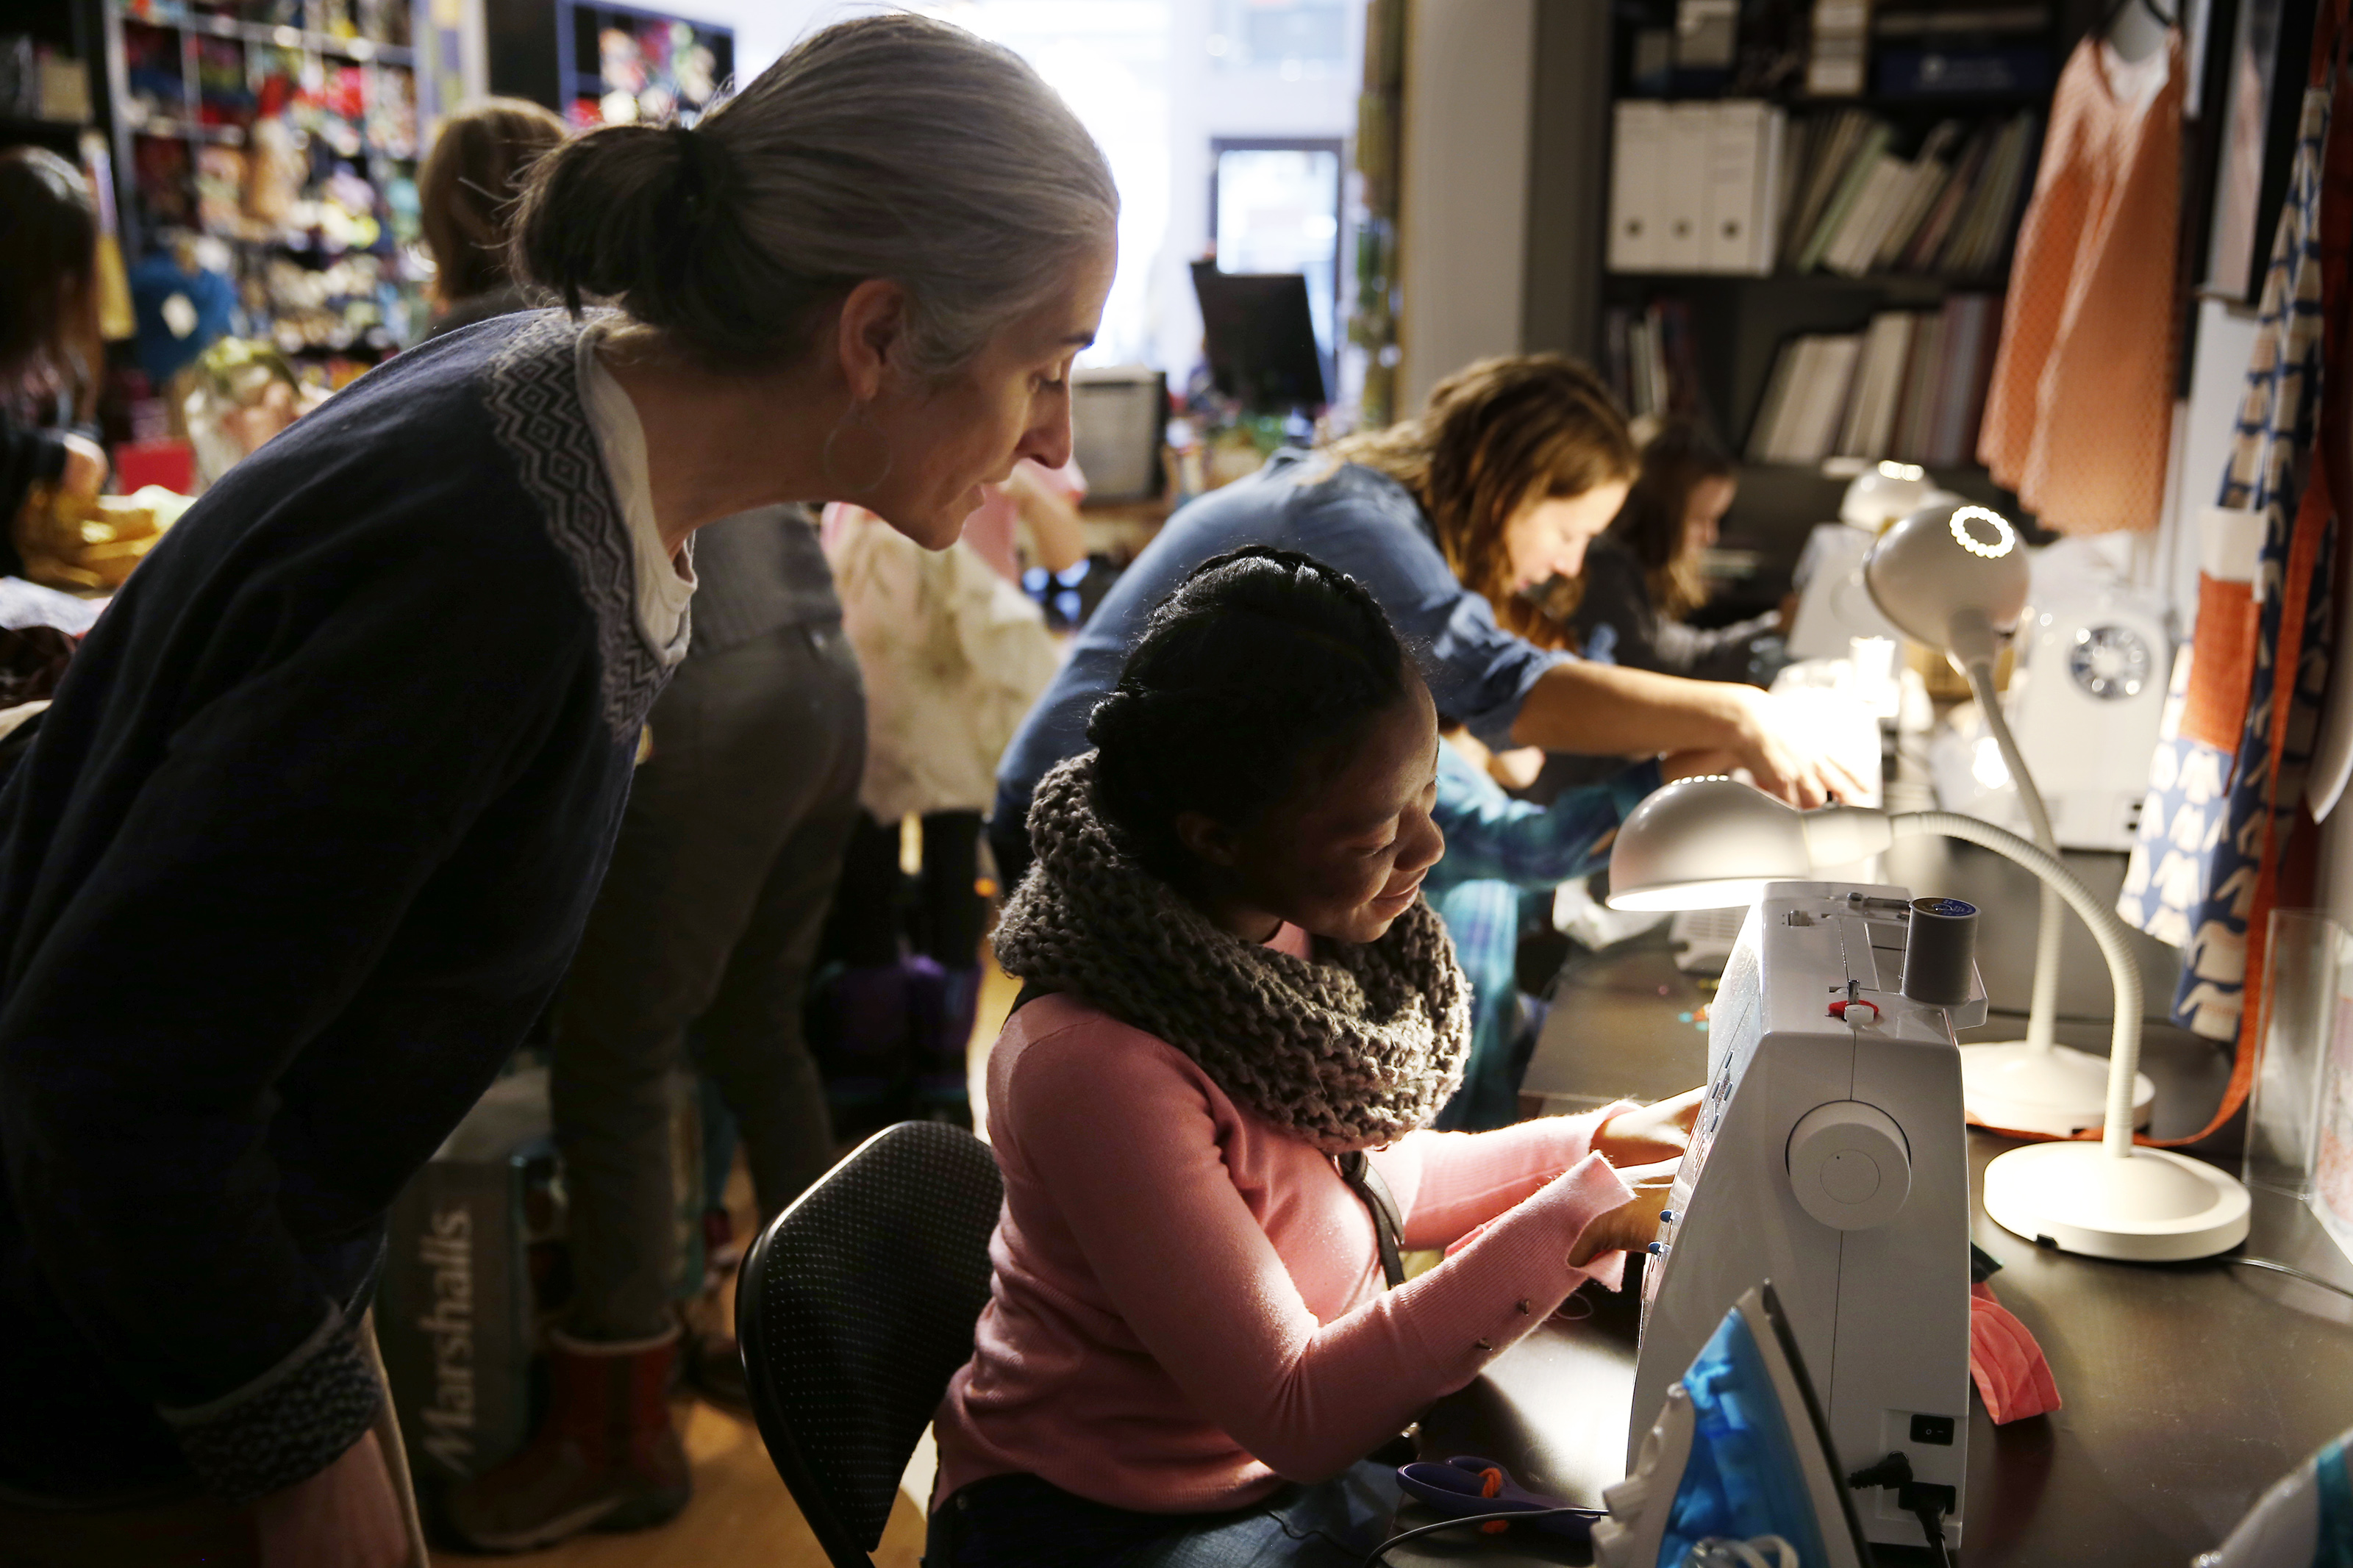 Hand-sewn bags help the poor, planet - The Boston Globe